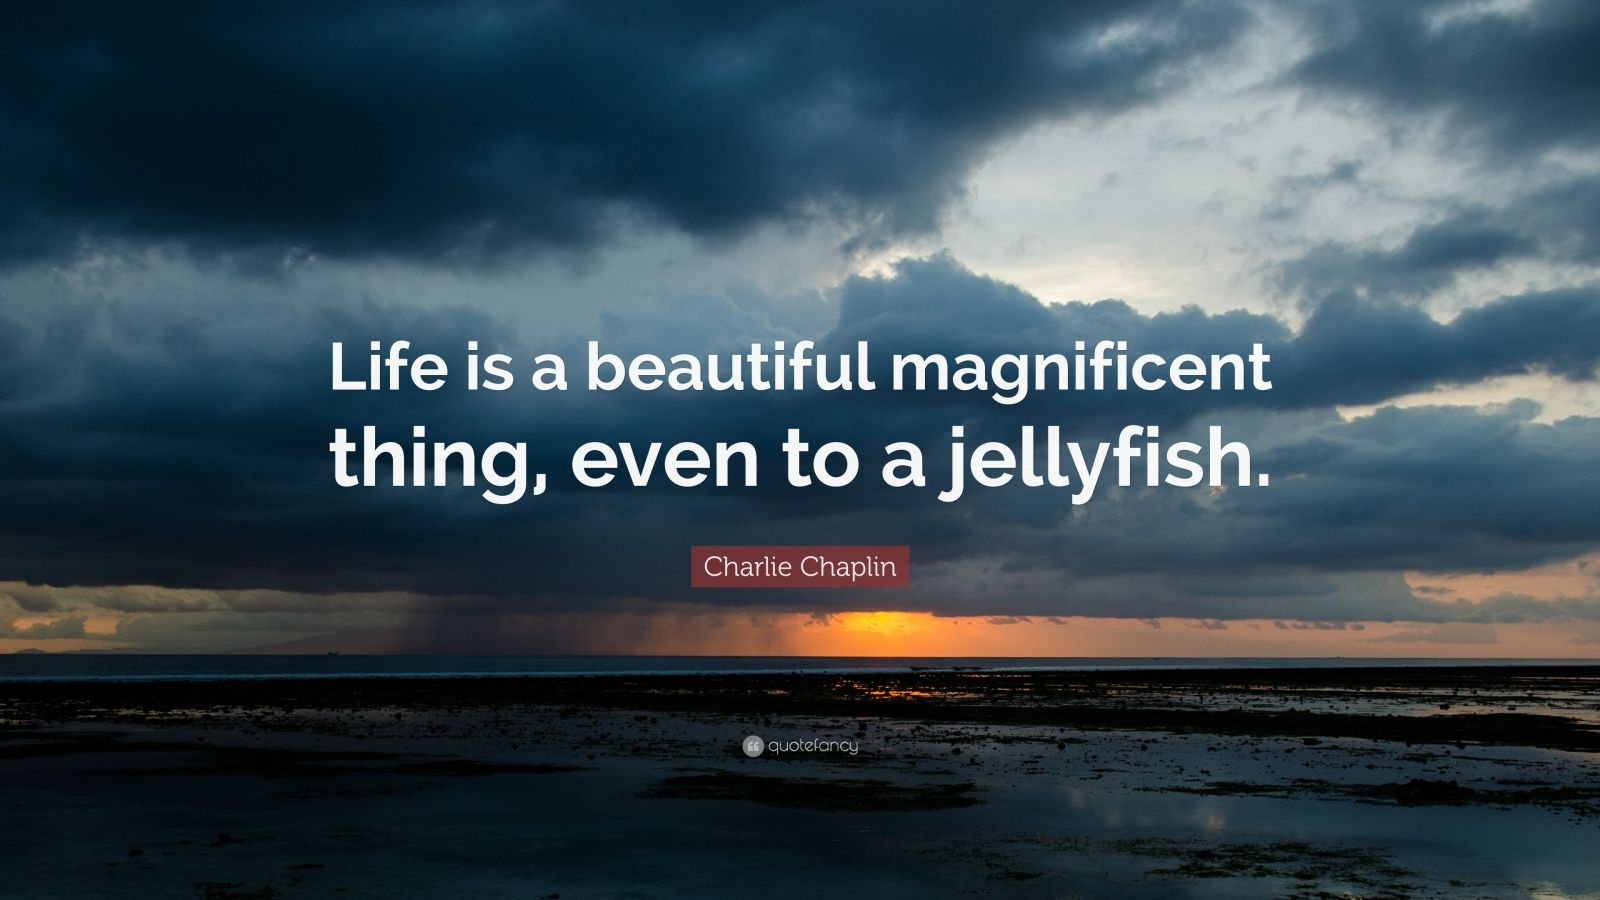 Wallpapers Philosophy Quotes Charlie Chaplin Quote Life Is A Beautiful Magnificent